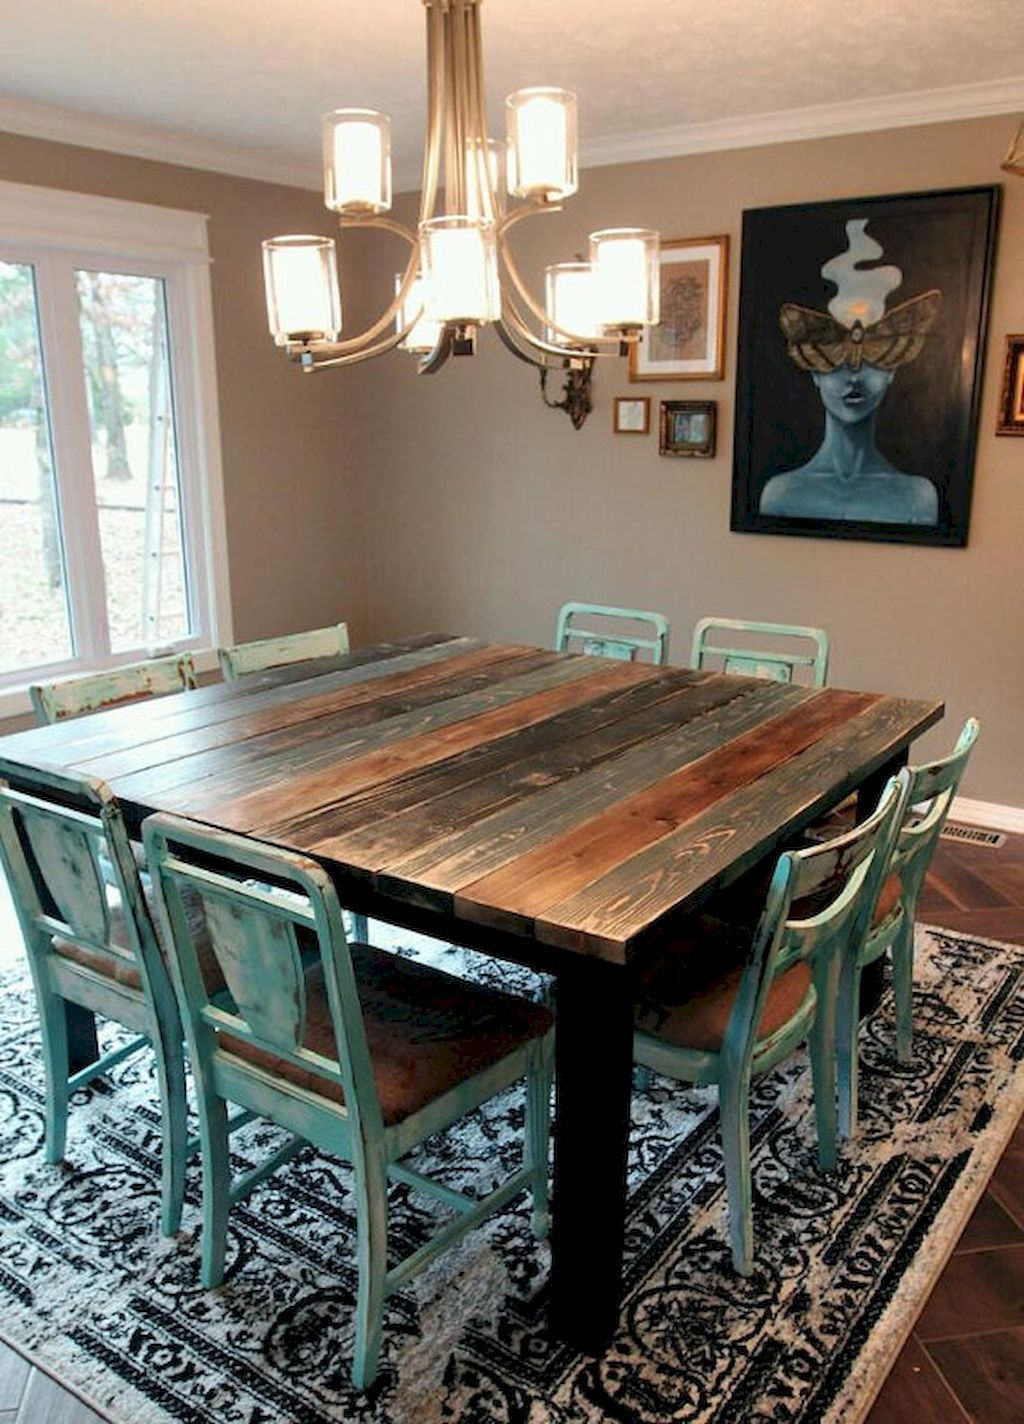 Rustic Farmhouse Dining Room Furniture And Decor Ideas 27 Fascinating Farm Style Dining Room Table 2018